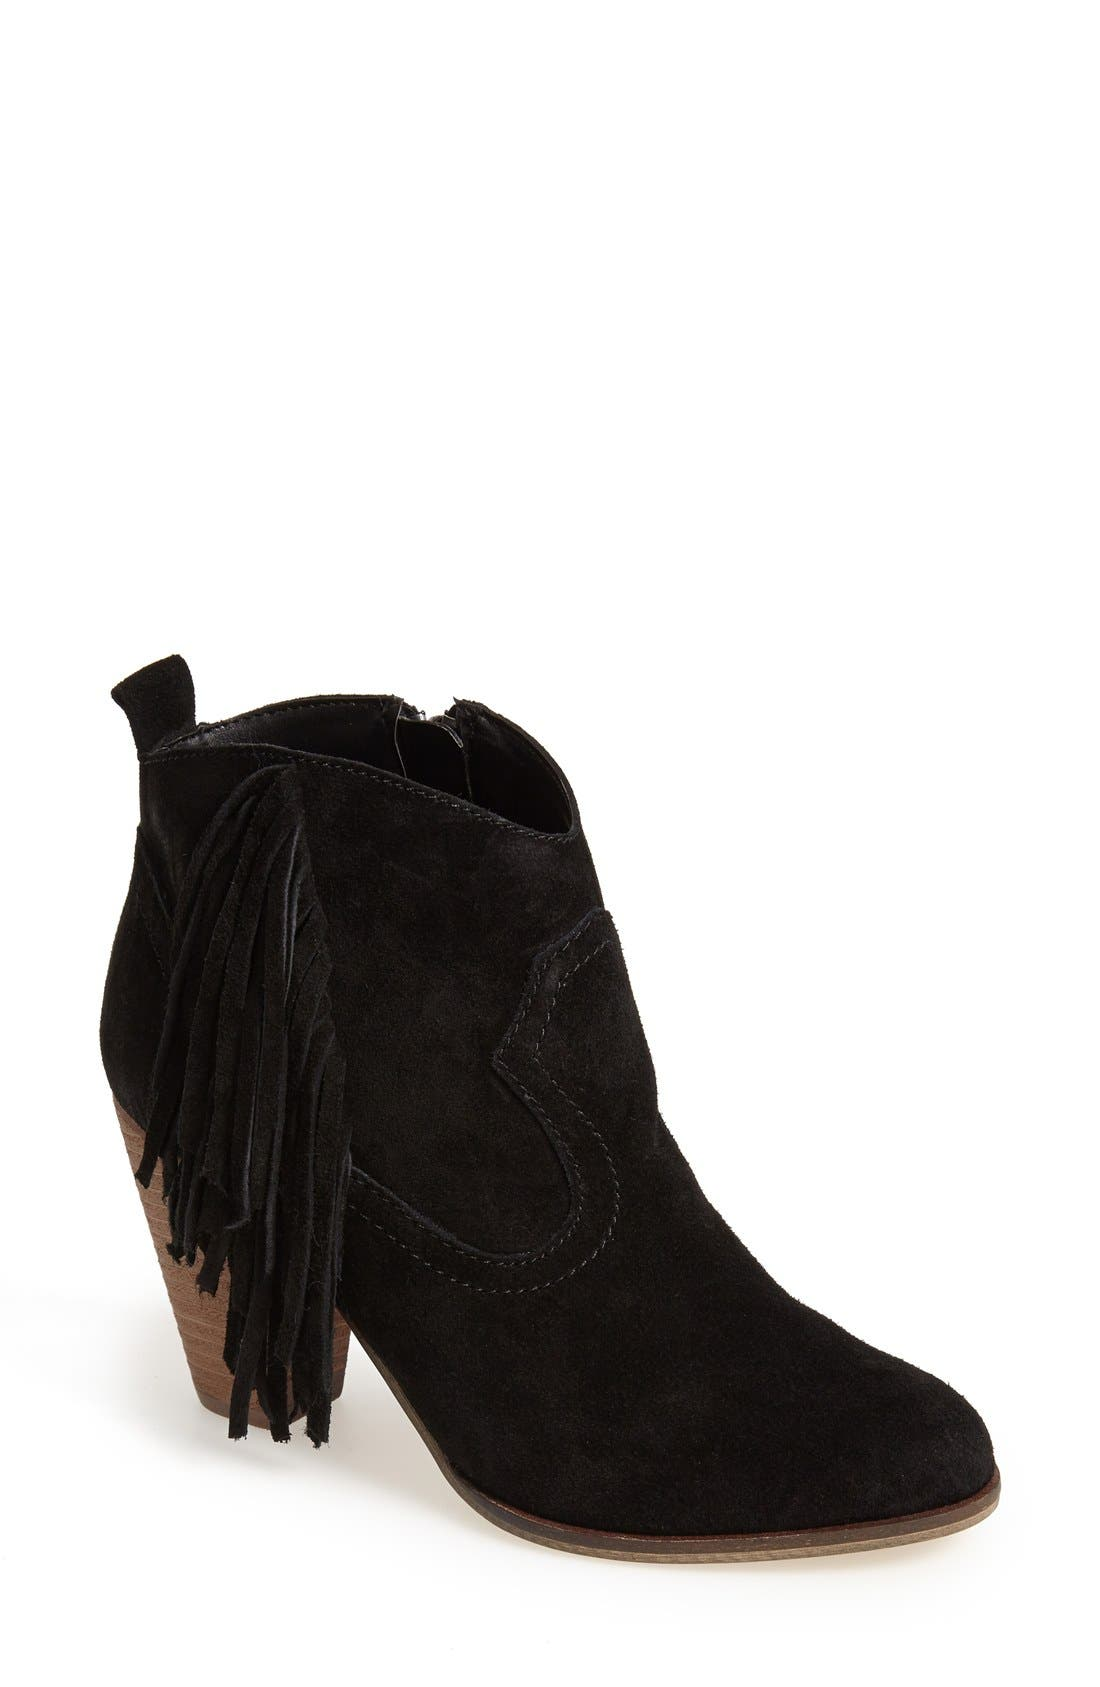 STEVE MADDEN, 'Ponncho' Suede Bootie, Main thumbnail 1, color, 006